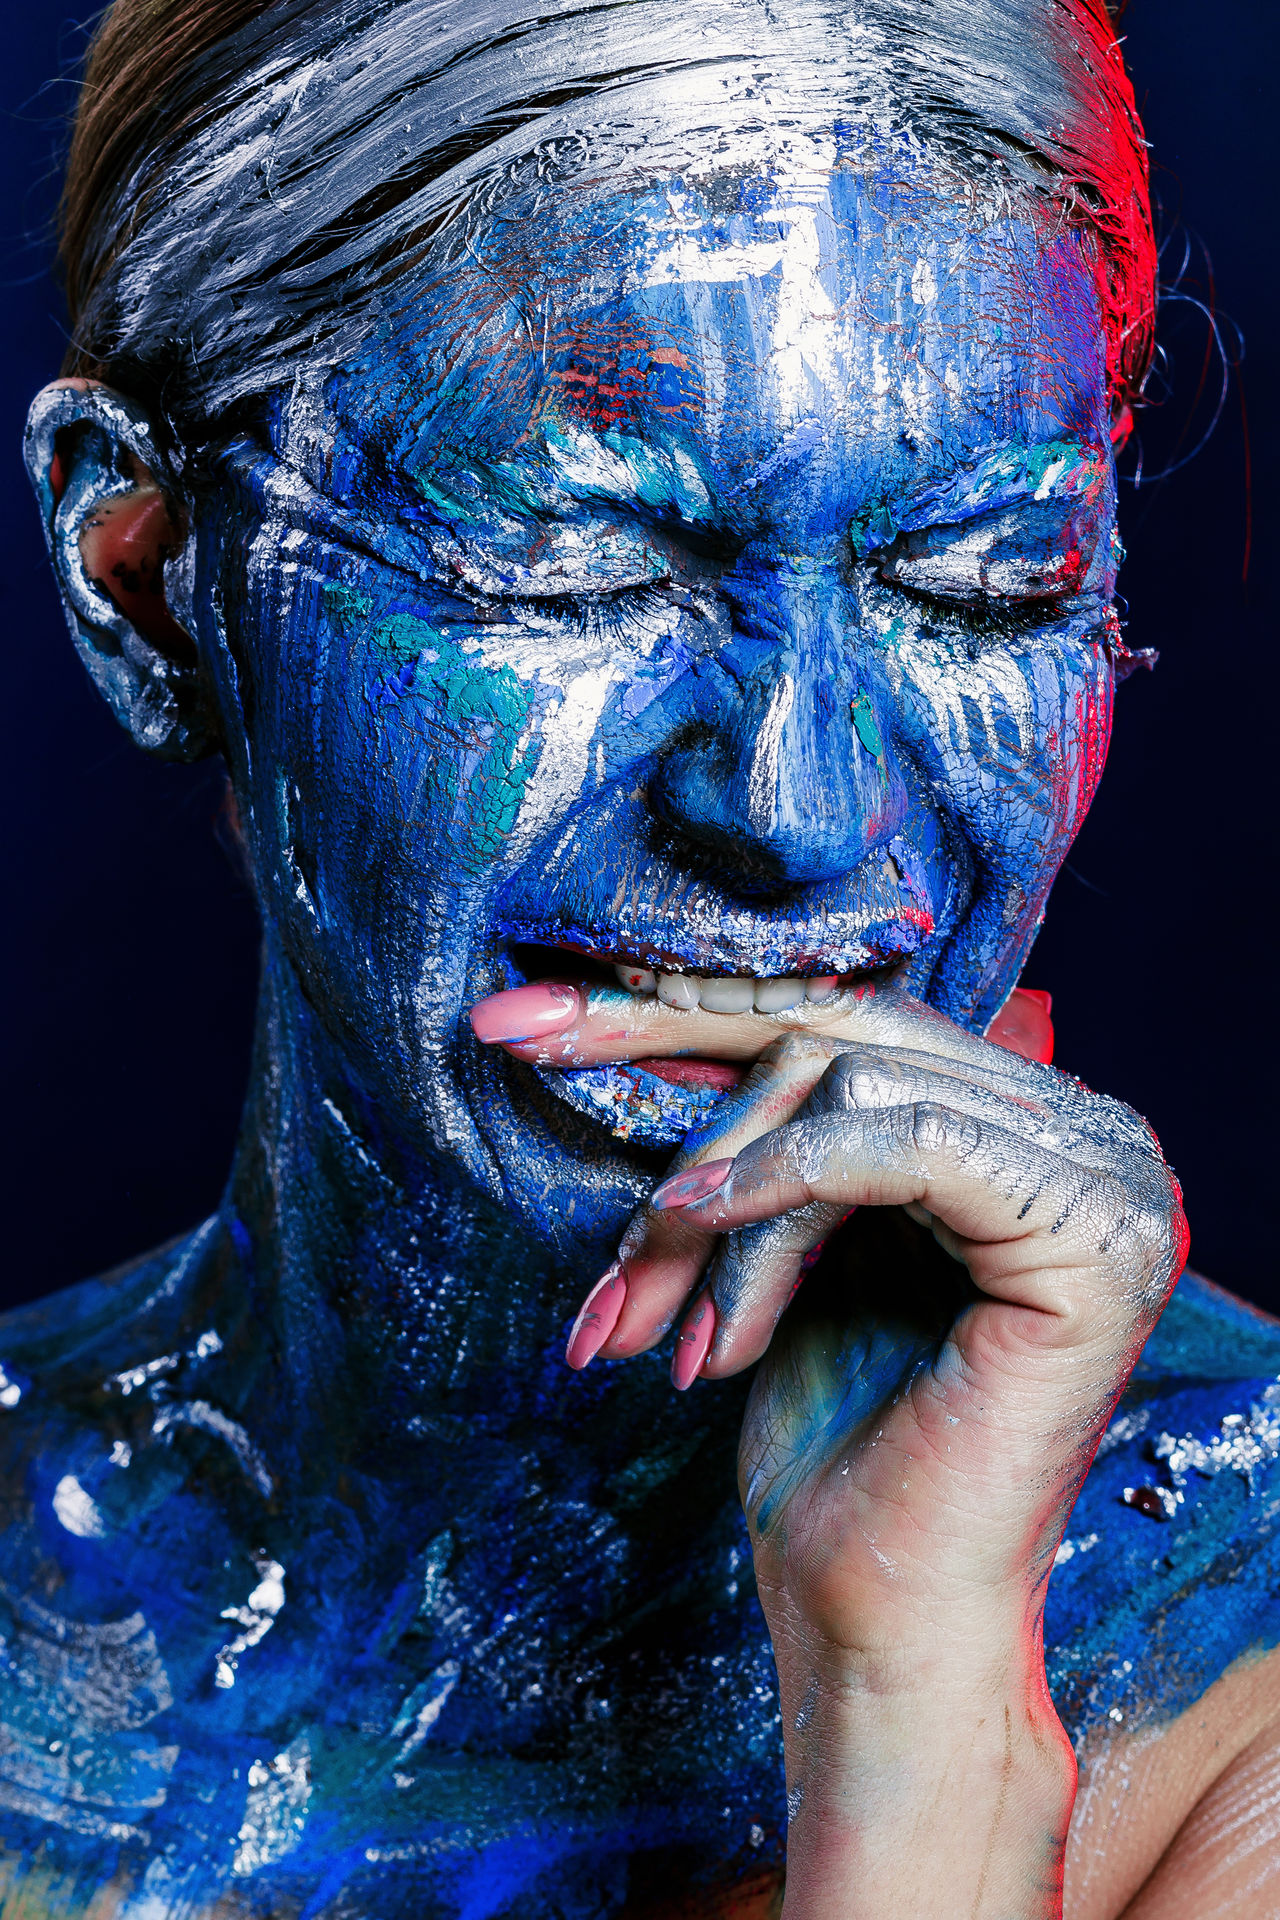 Beauty Beauty Product Bizarre Blue Close-up Emotional Photography Emotions Emotions Captured Face Paint Fantasy Fashion Fashion Model Future Vision Futuristic Human Body Part Human Eye Human Face Human Hand Make-up Multi Colored Studio Shot Technology